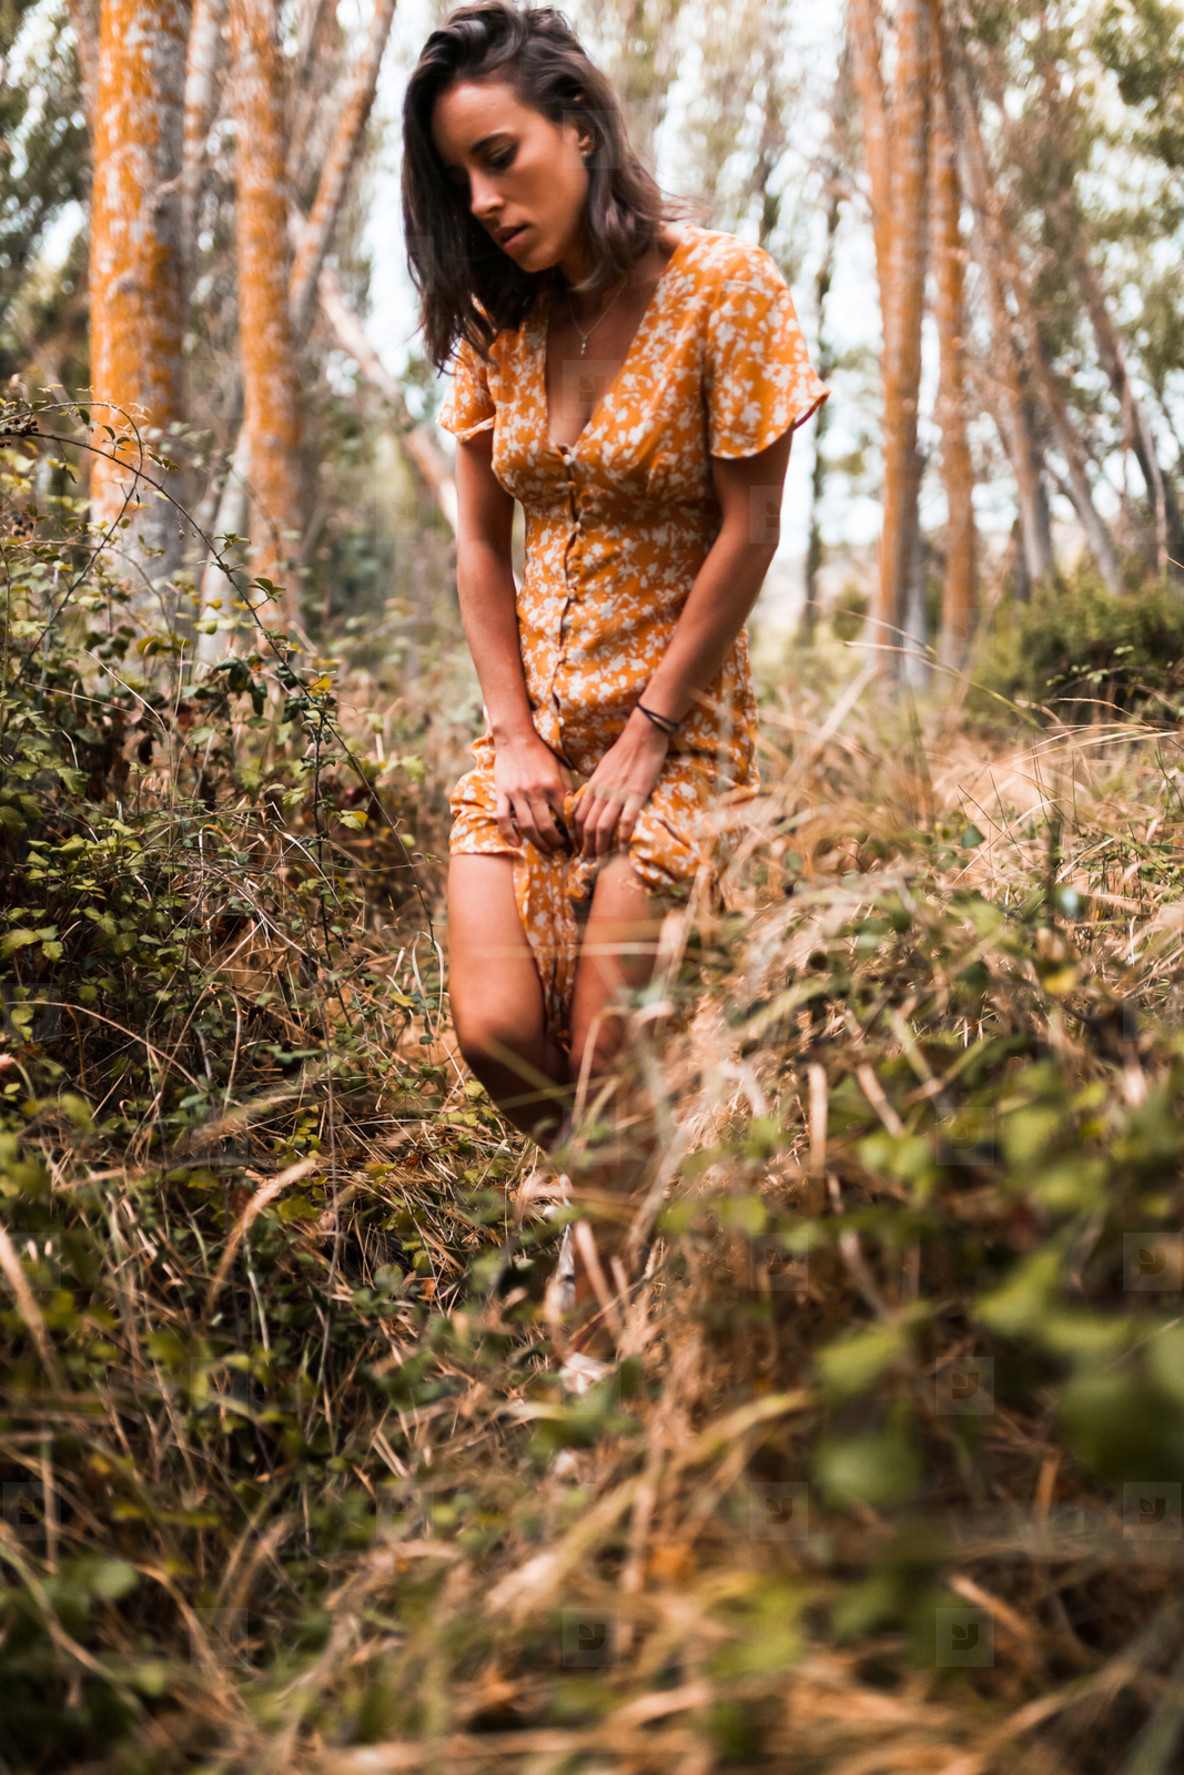 Outdoor portrait of a beautiful brunette woman wearing a dress in the forest